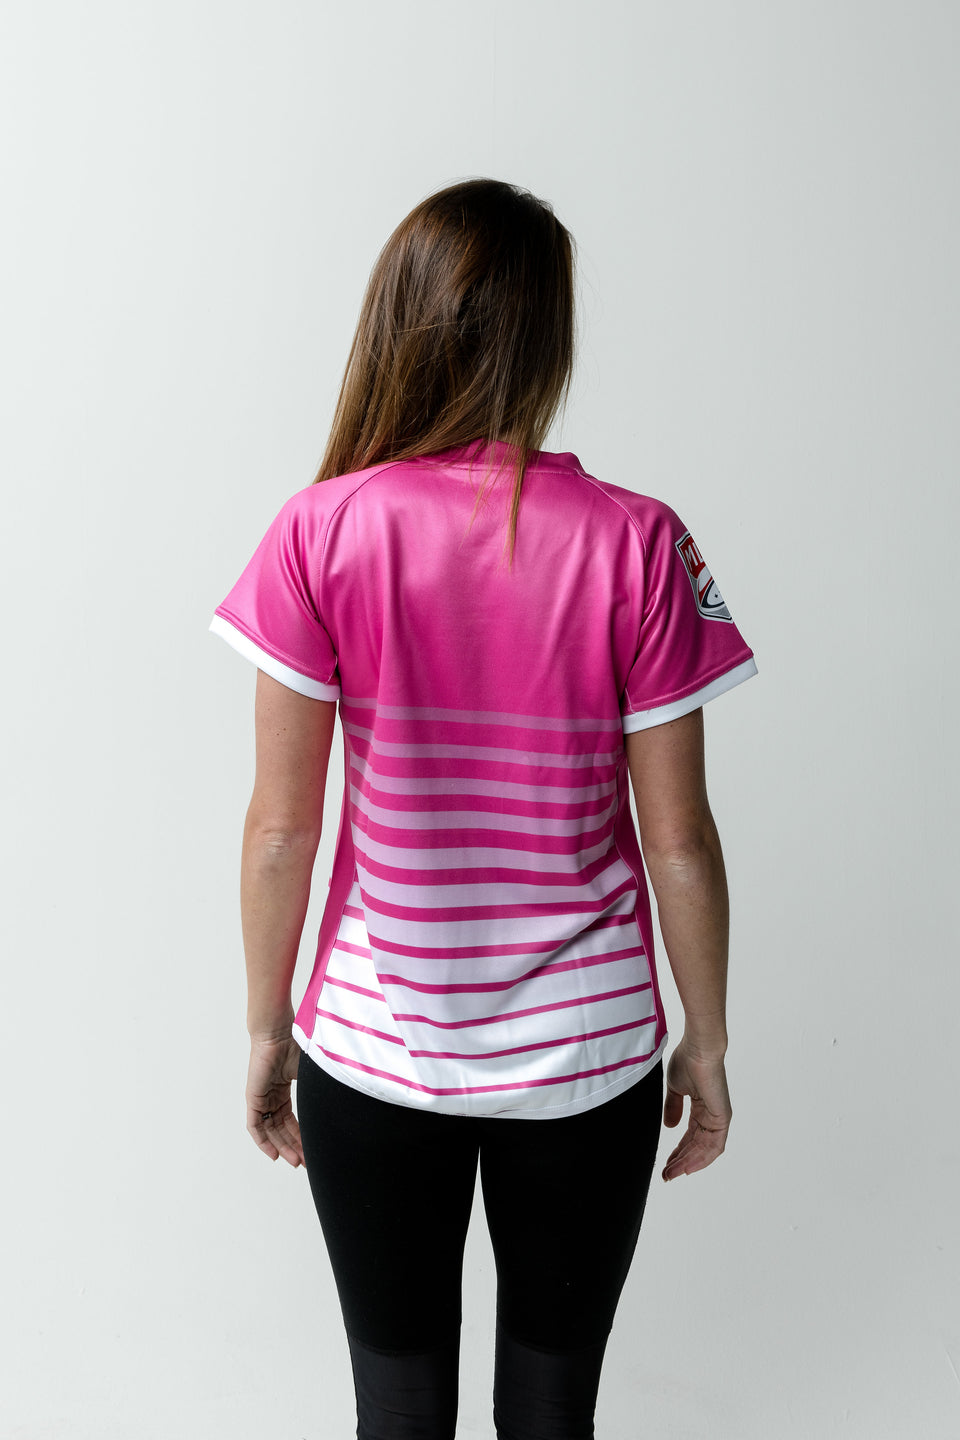 SD Legion Replica Pink Jersey Women's